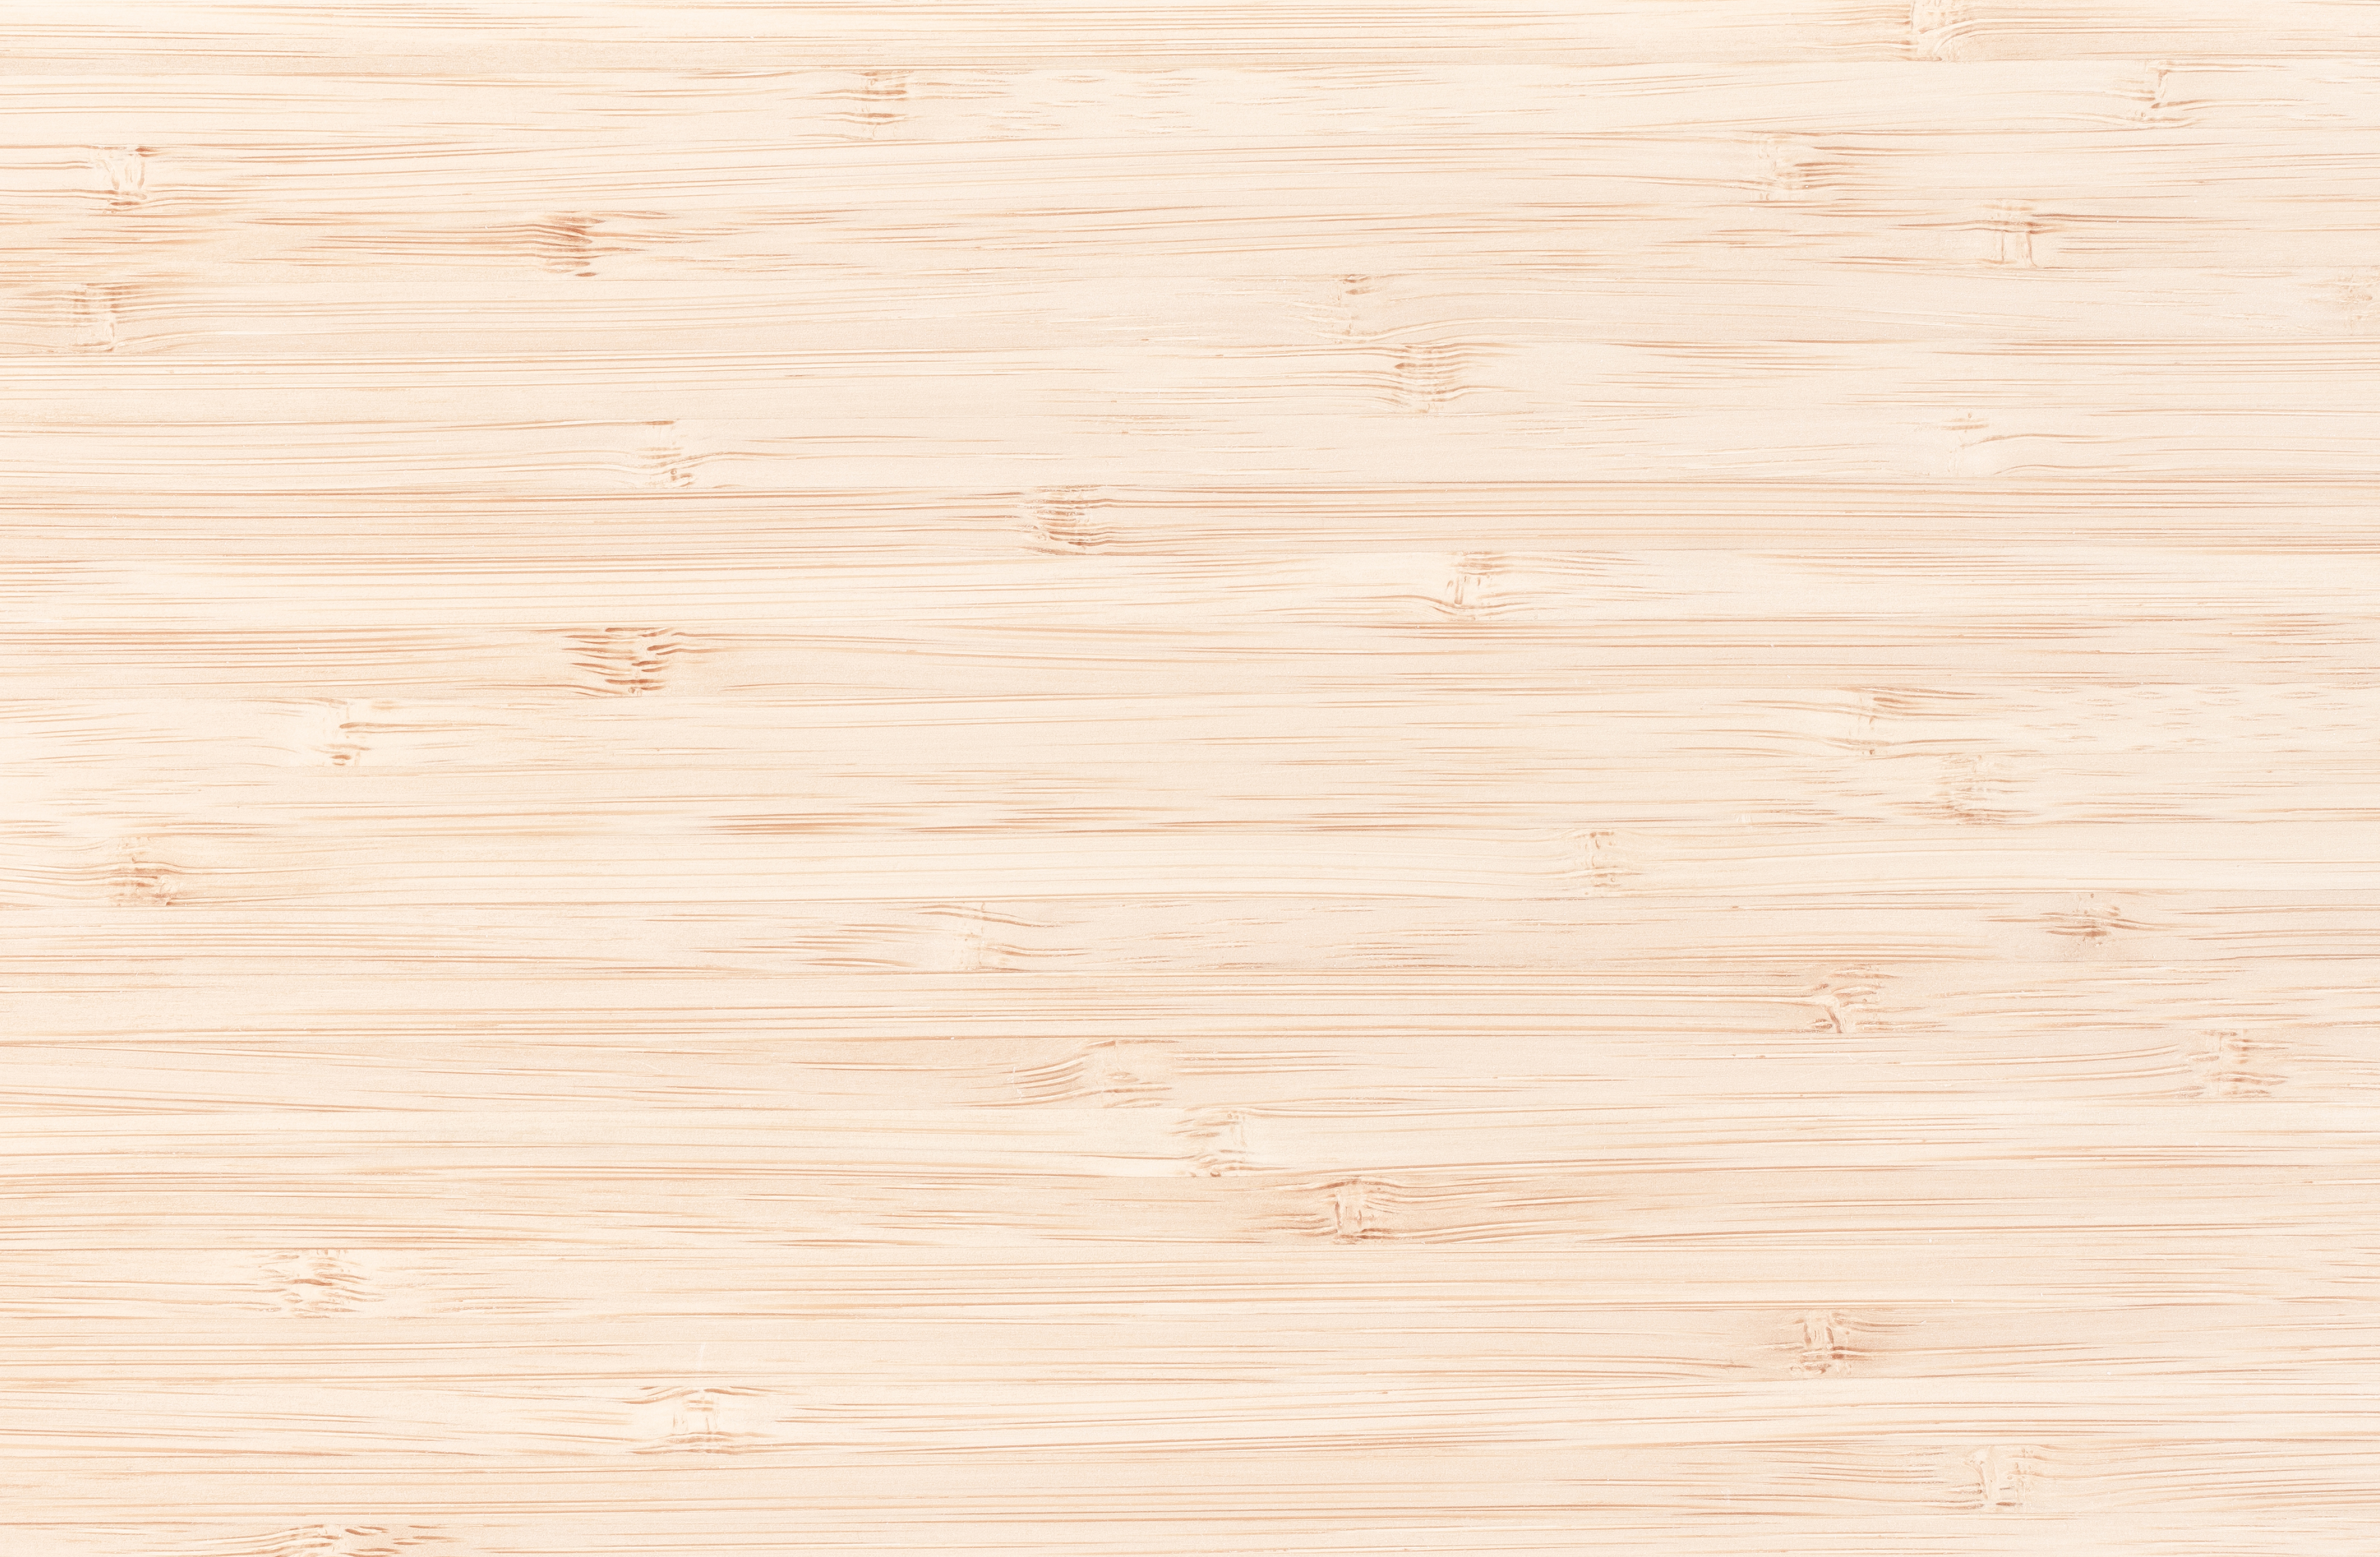 Texture of wood background closeup, Abstract, Smooth, Material, Nature, HQ Photo